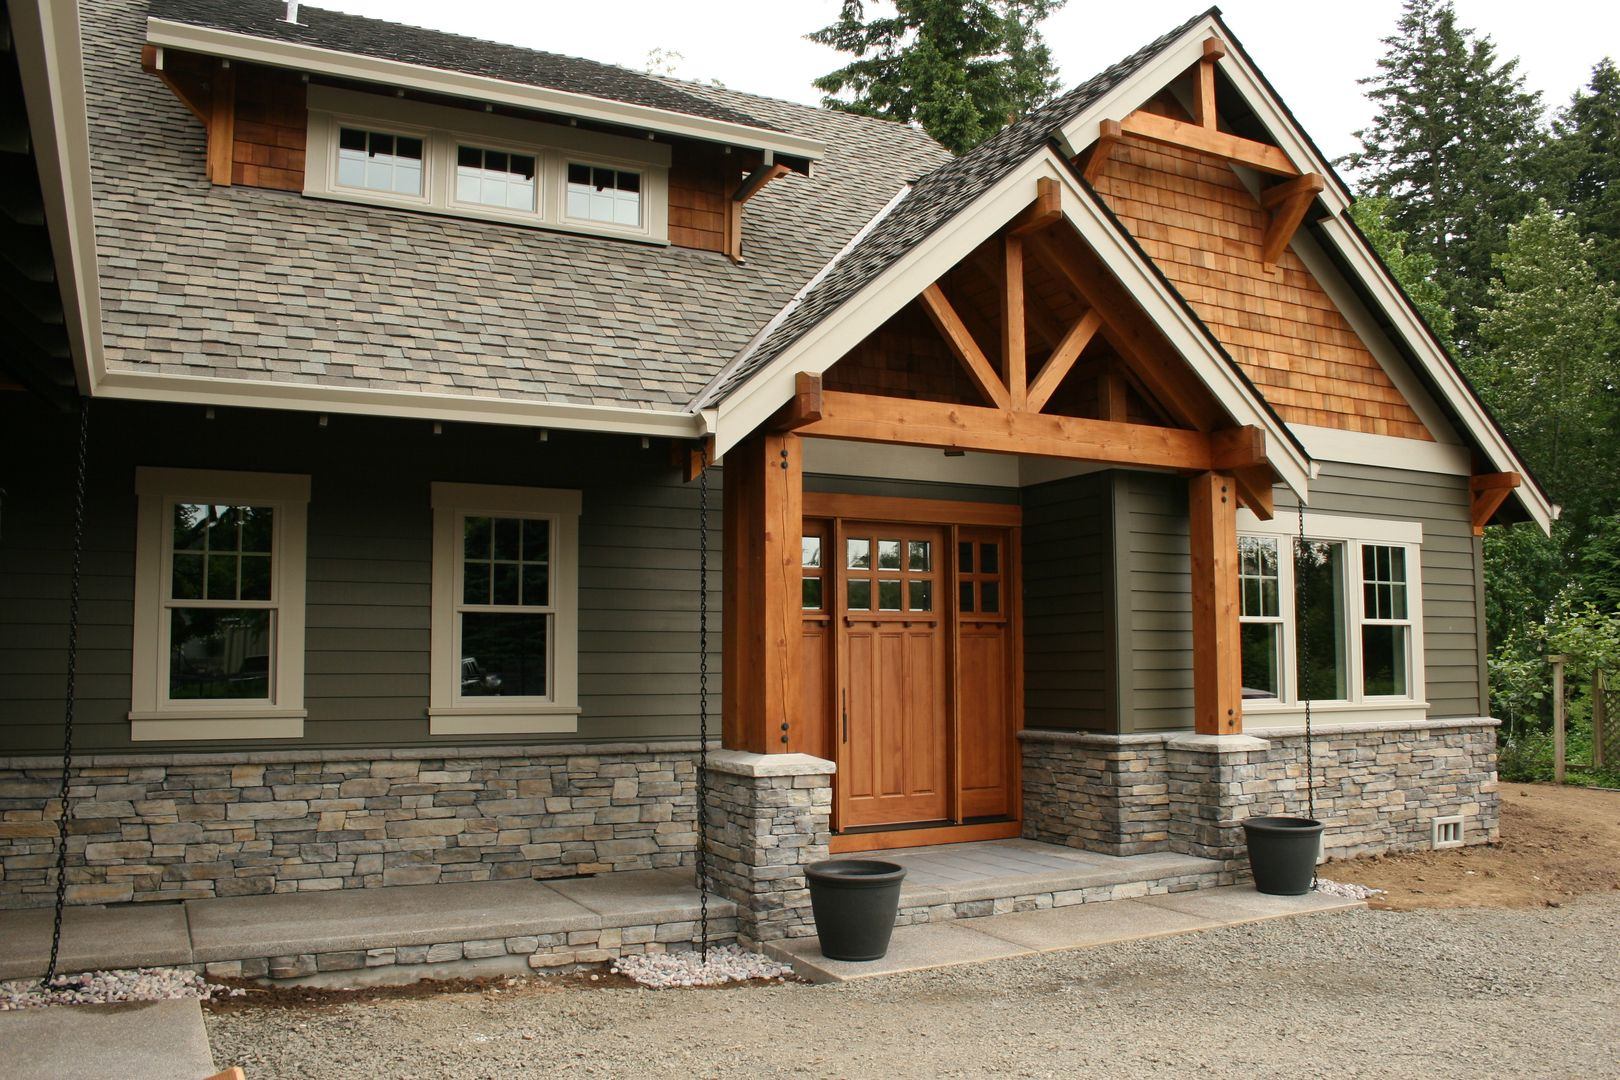 Exterior Wood Shakers Colors House Exterior Build Your Own House House Styles